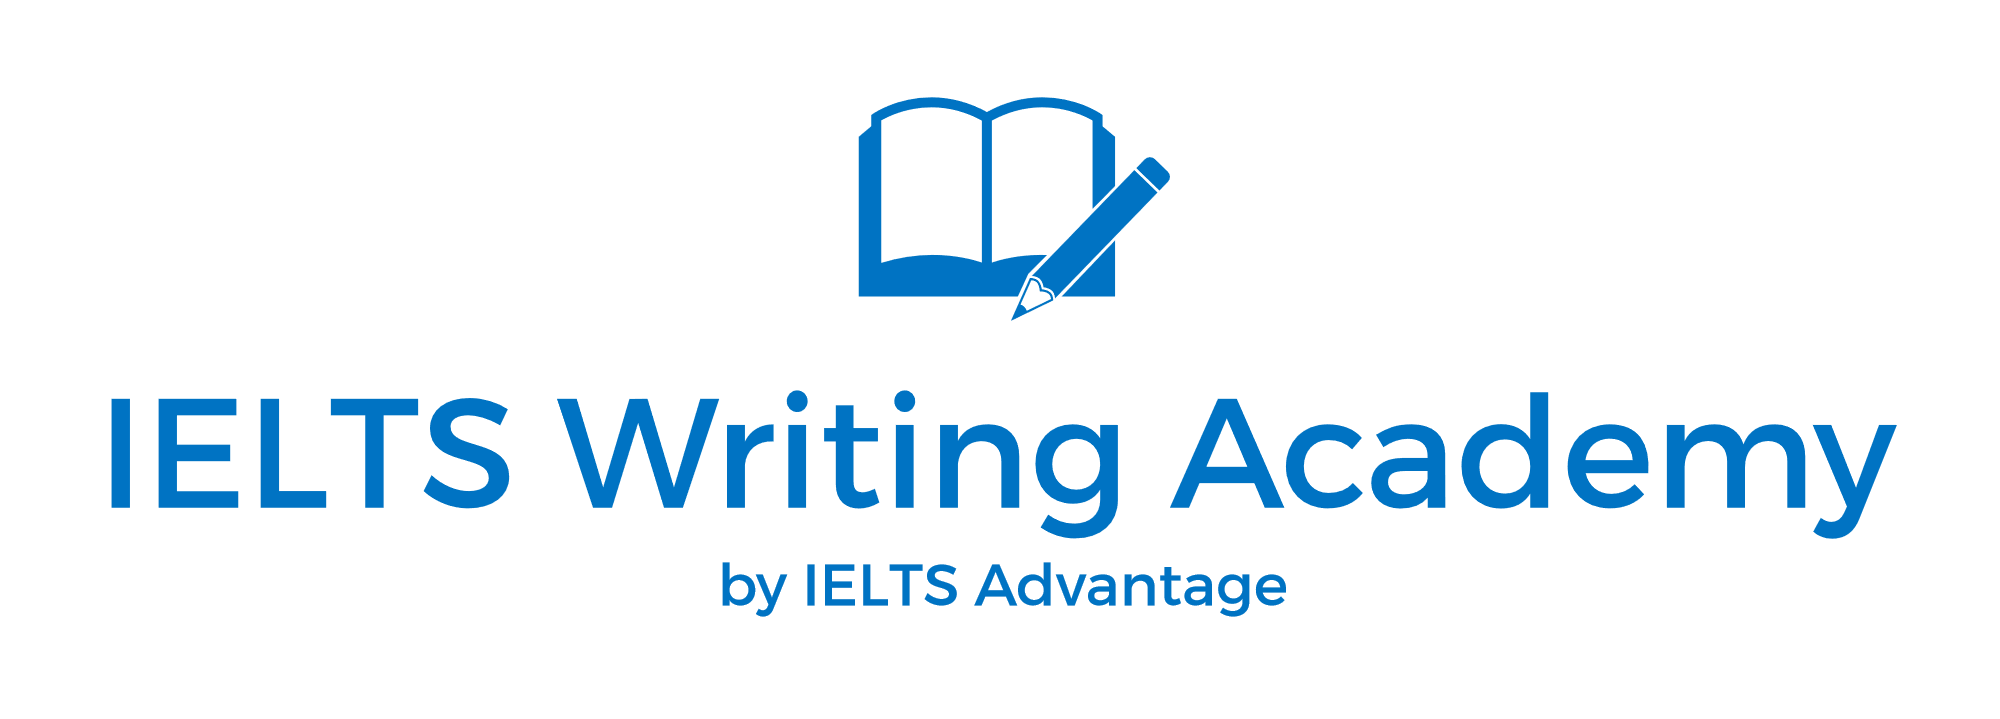 IELTS Writing Academy